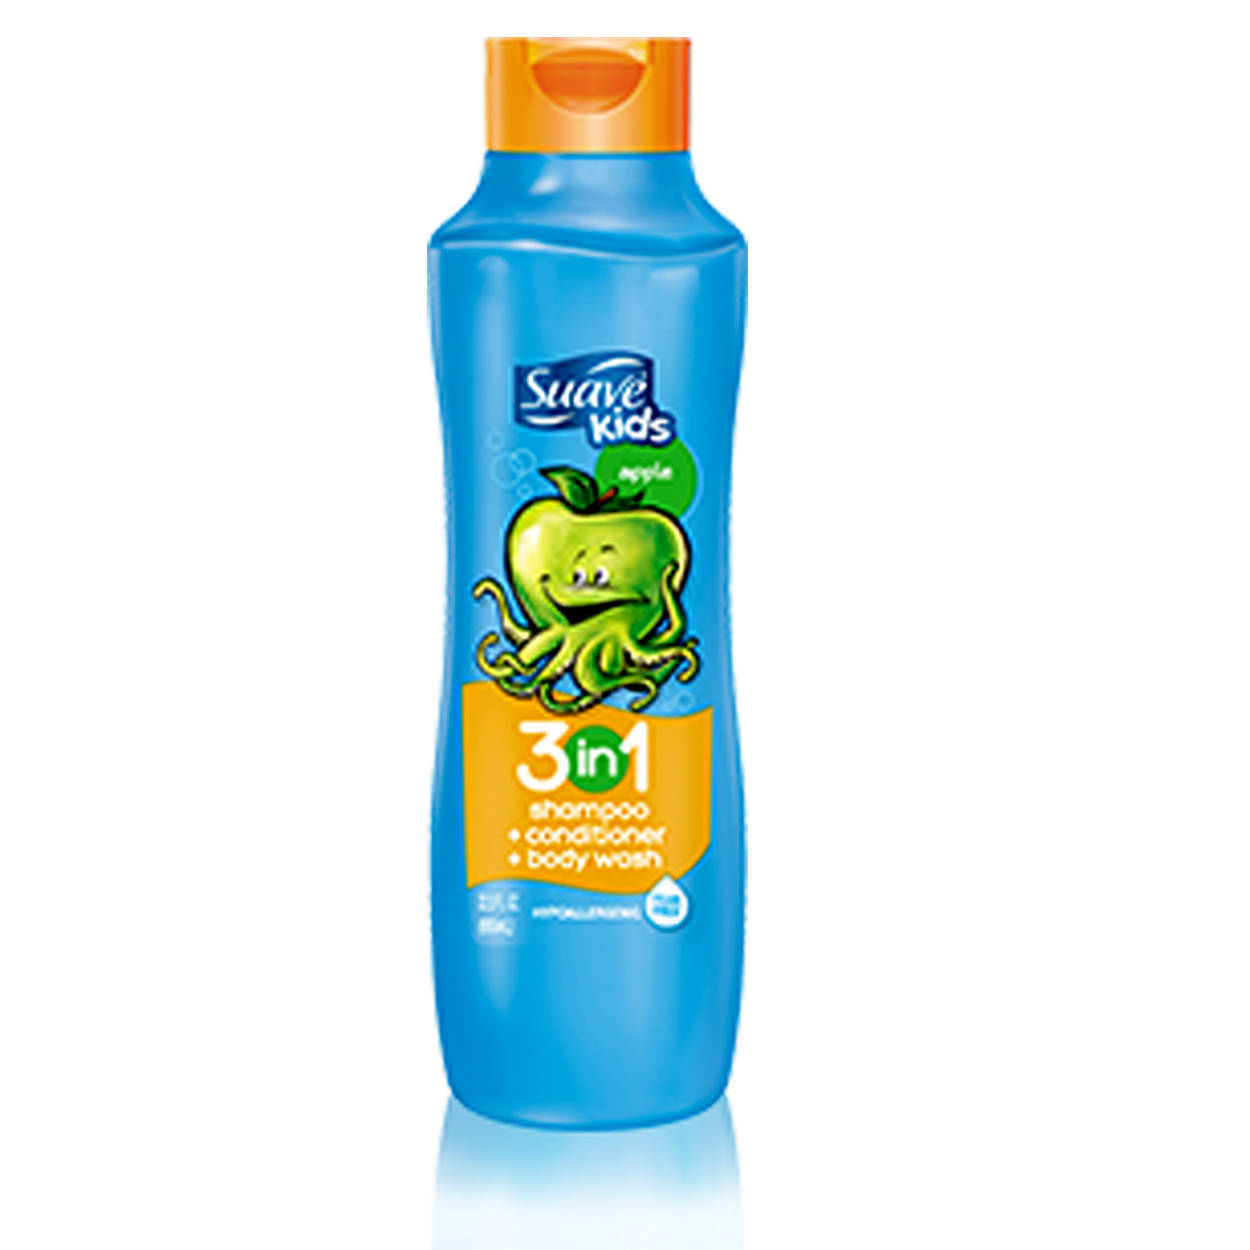 Suave 3in1 Kids Shampoo Assorted 665ml